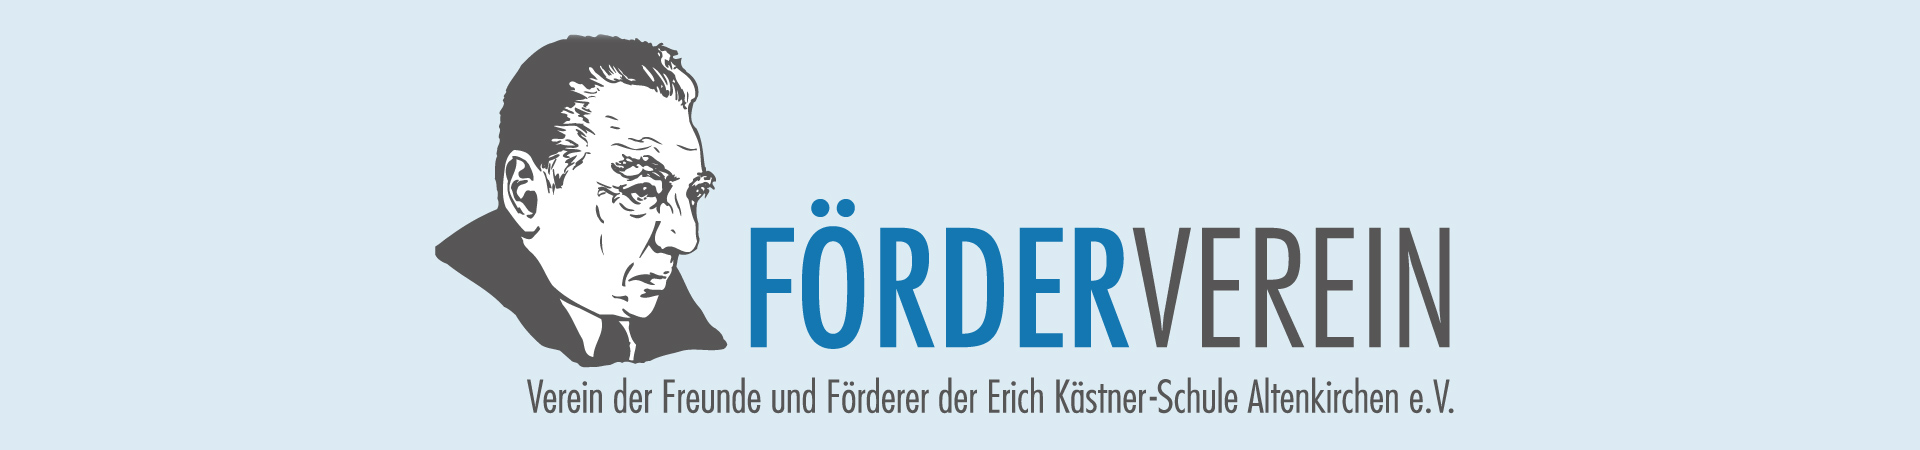 eks_header_foerderverein